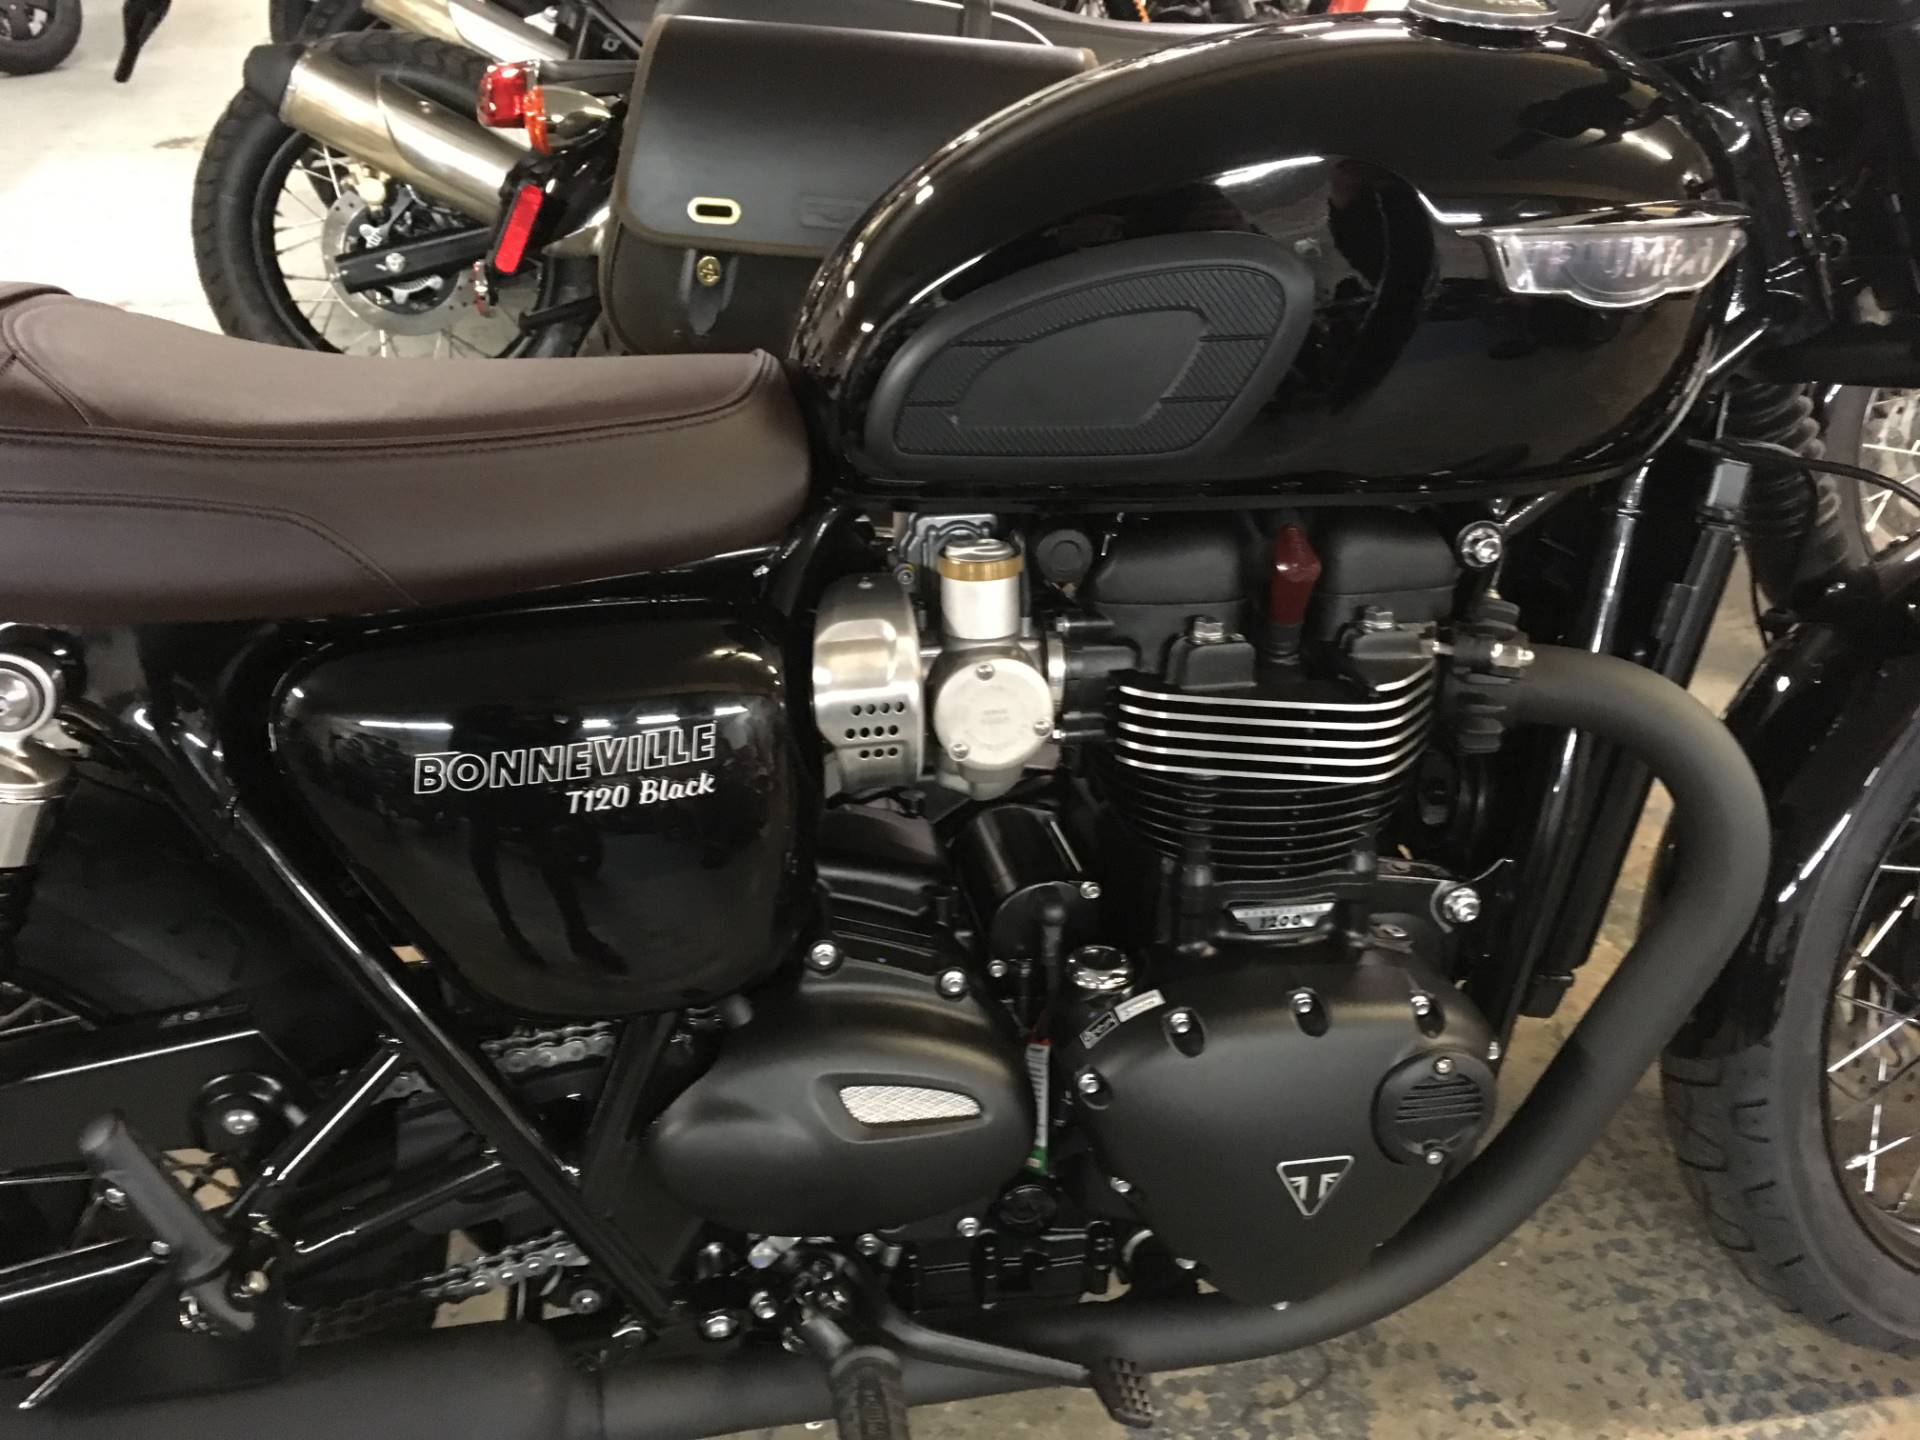 2020 Triumph Bonneville T120 Black in Greensboro, North Carolina - Photo 3